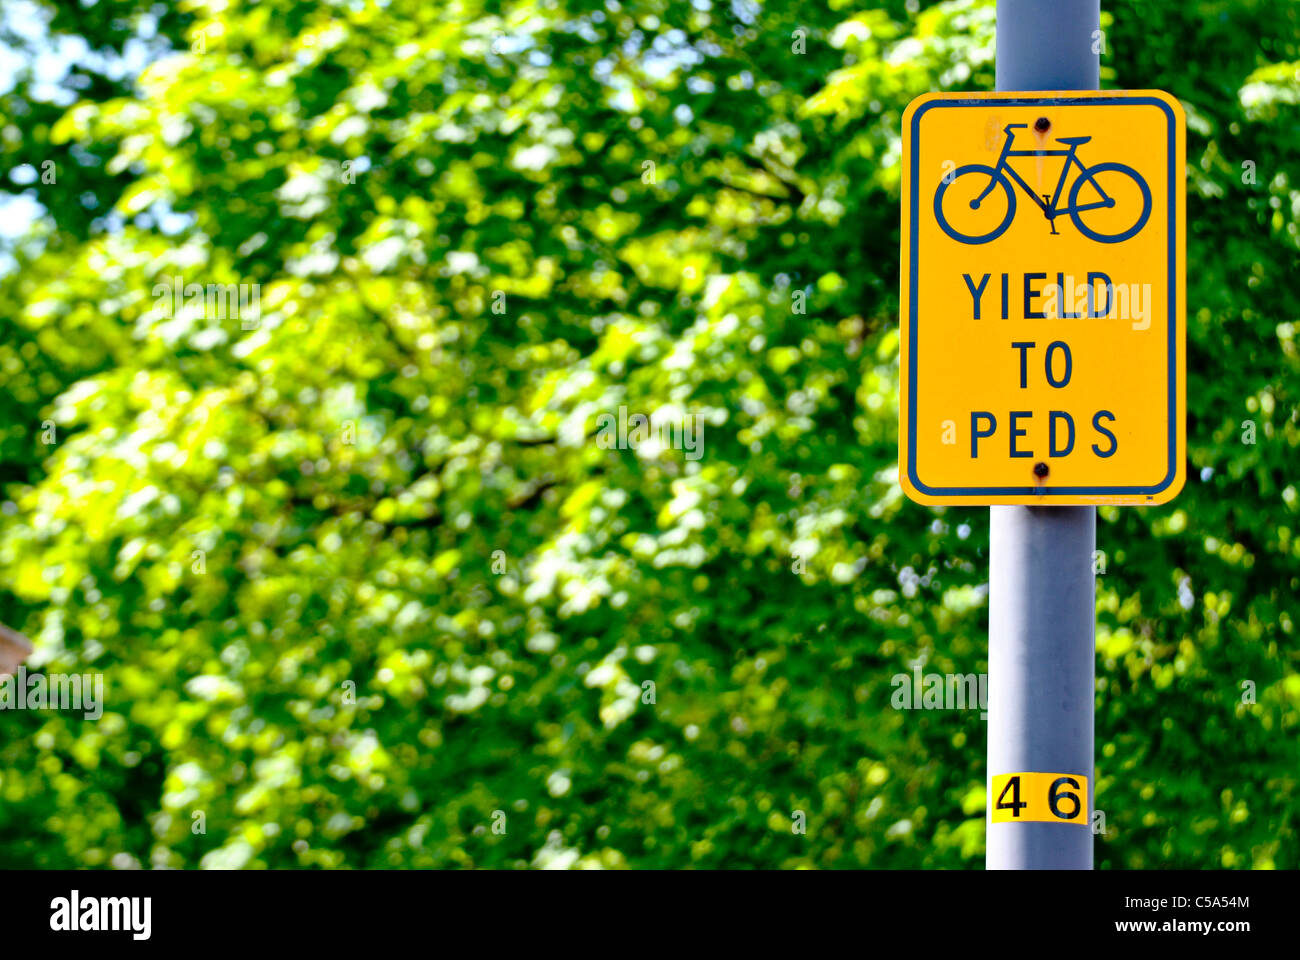 Sign 'Yield to Peds' on the street. - Stock Image